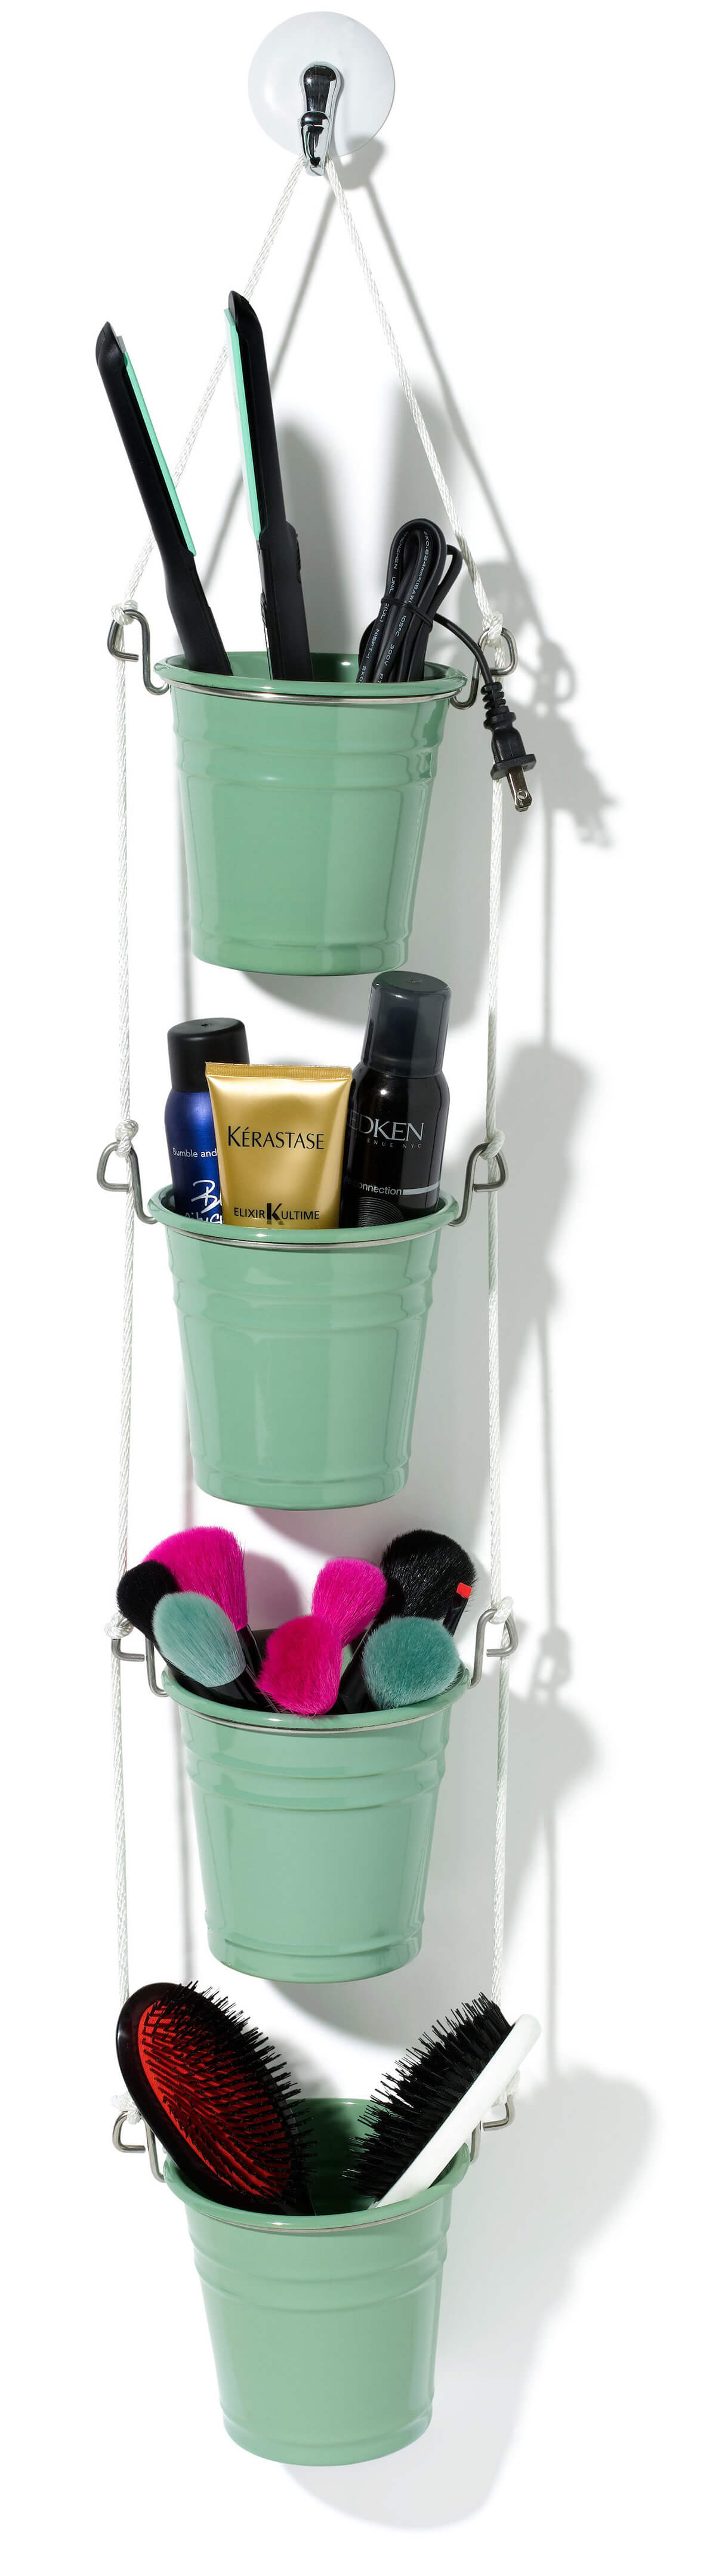 Bathroom Closet Swinging Buckets